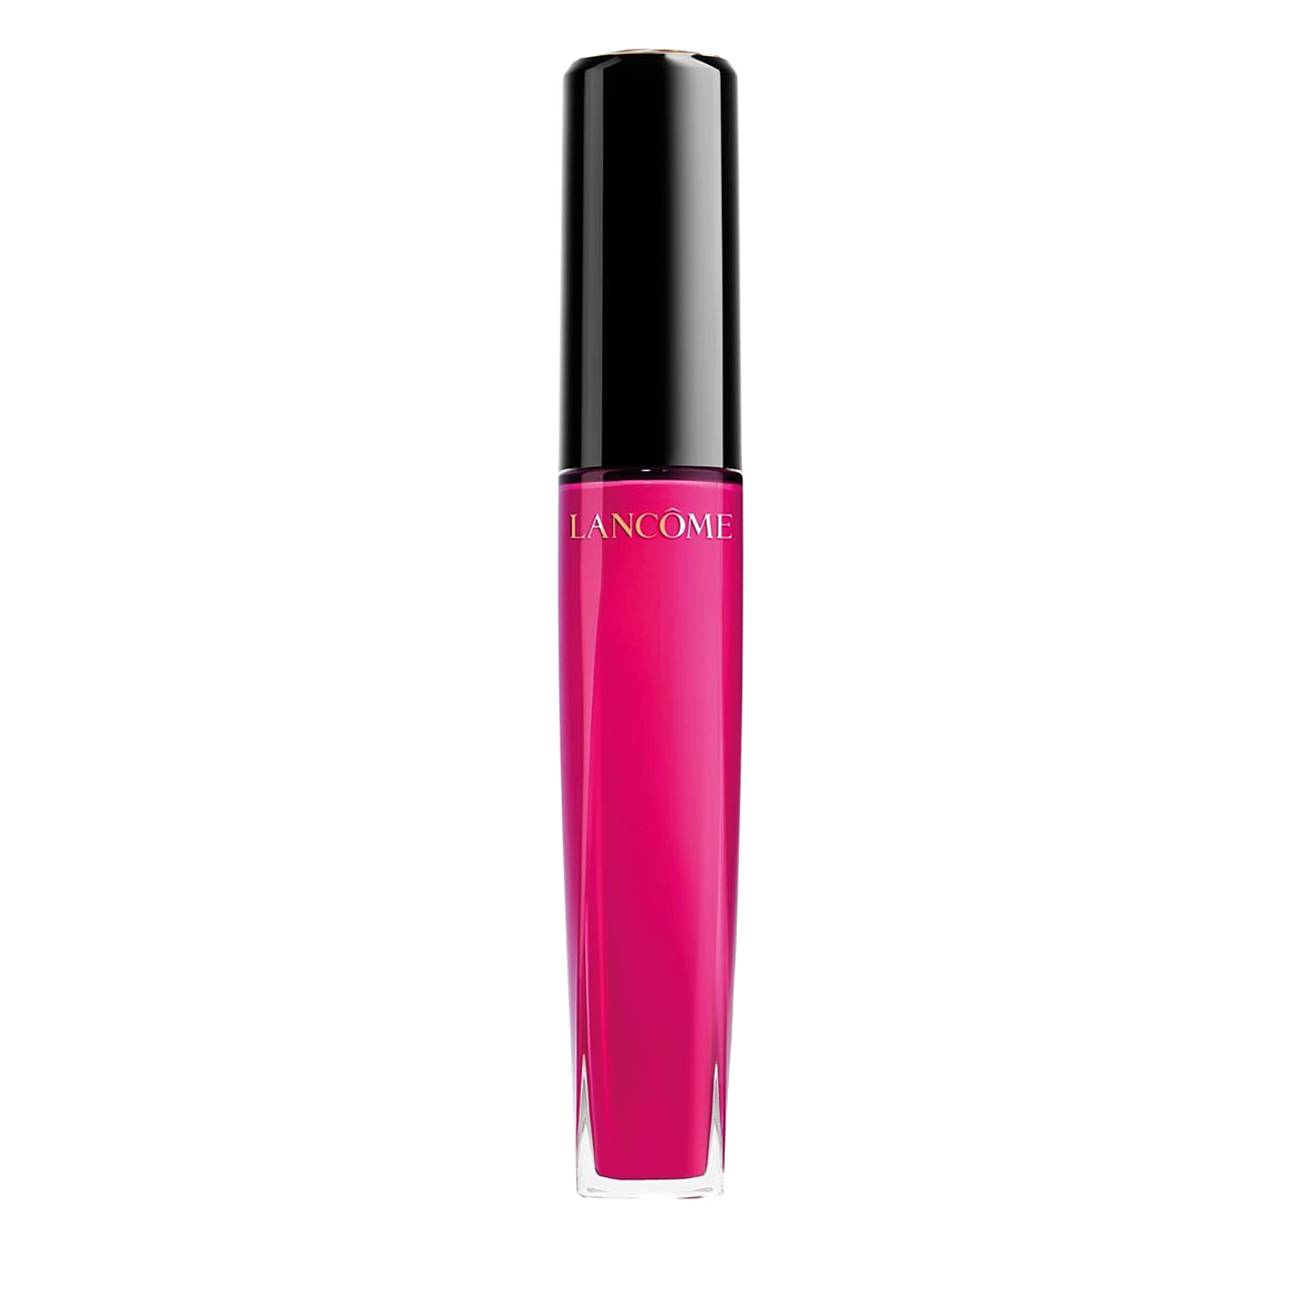 L'absolu Velvet Matte 181 8ml Lancôme imagine 2021 bestvalue.eu